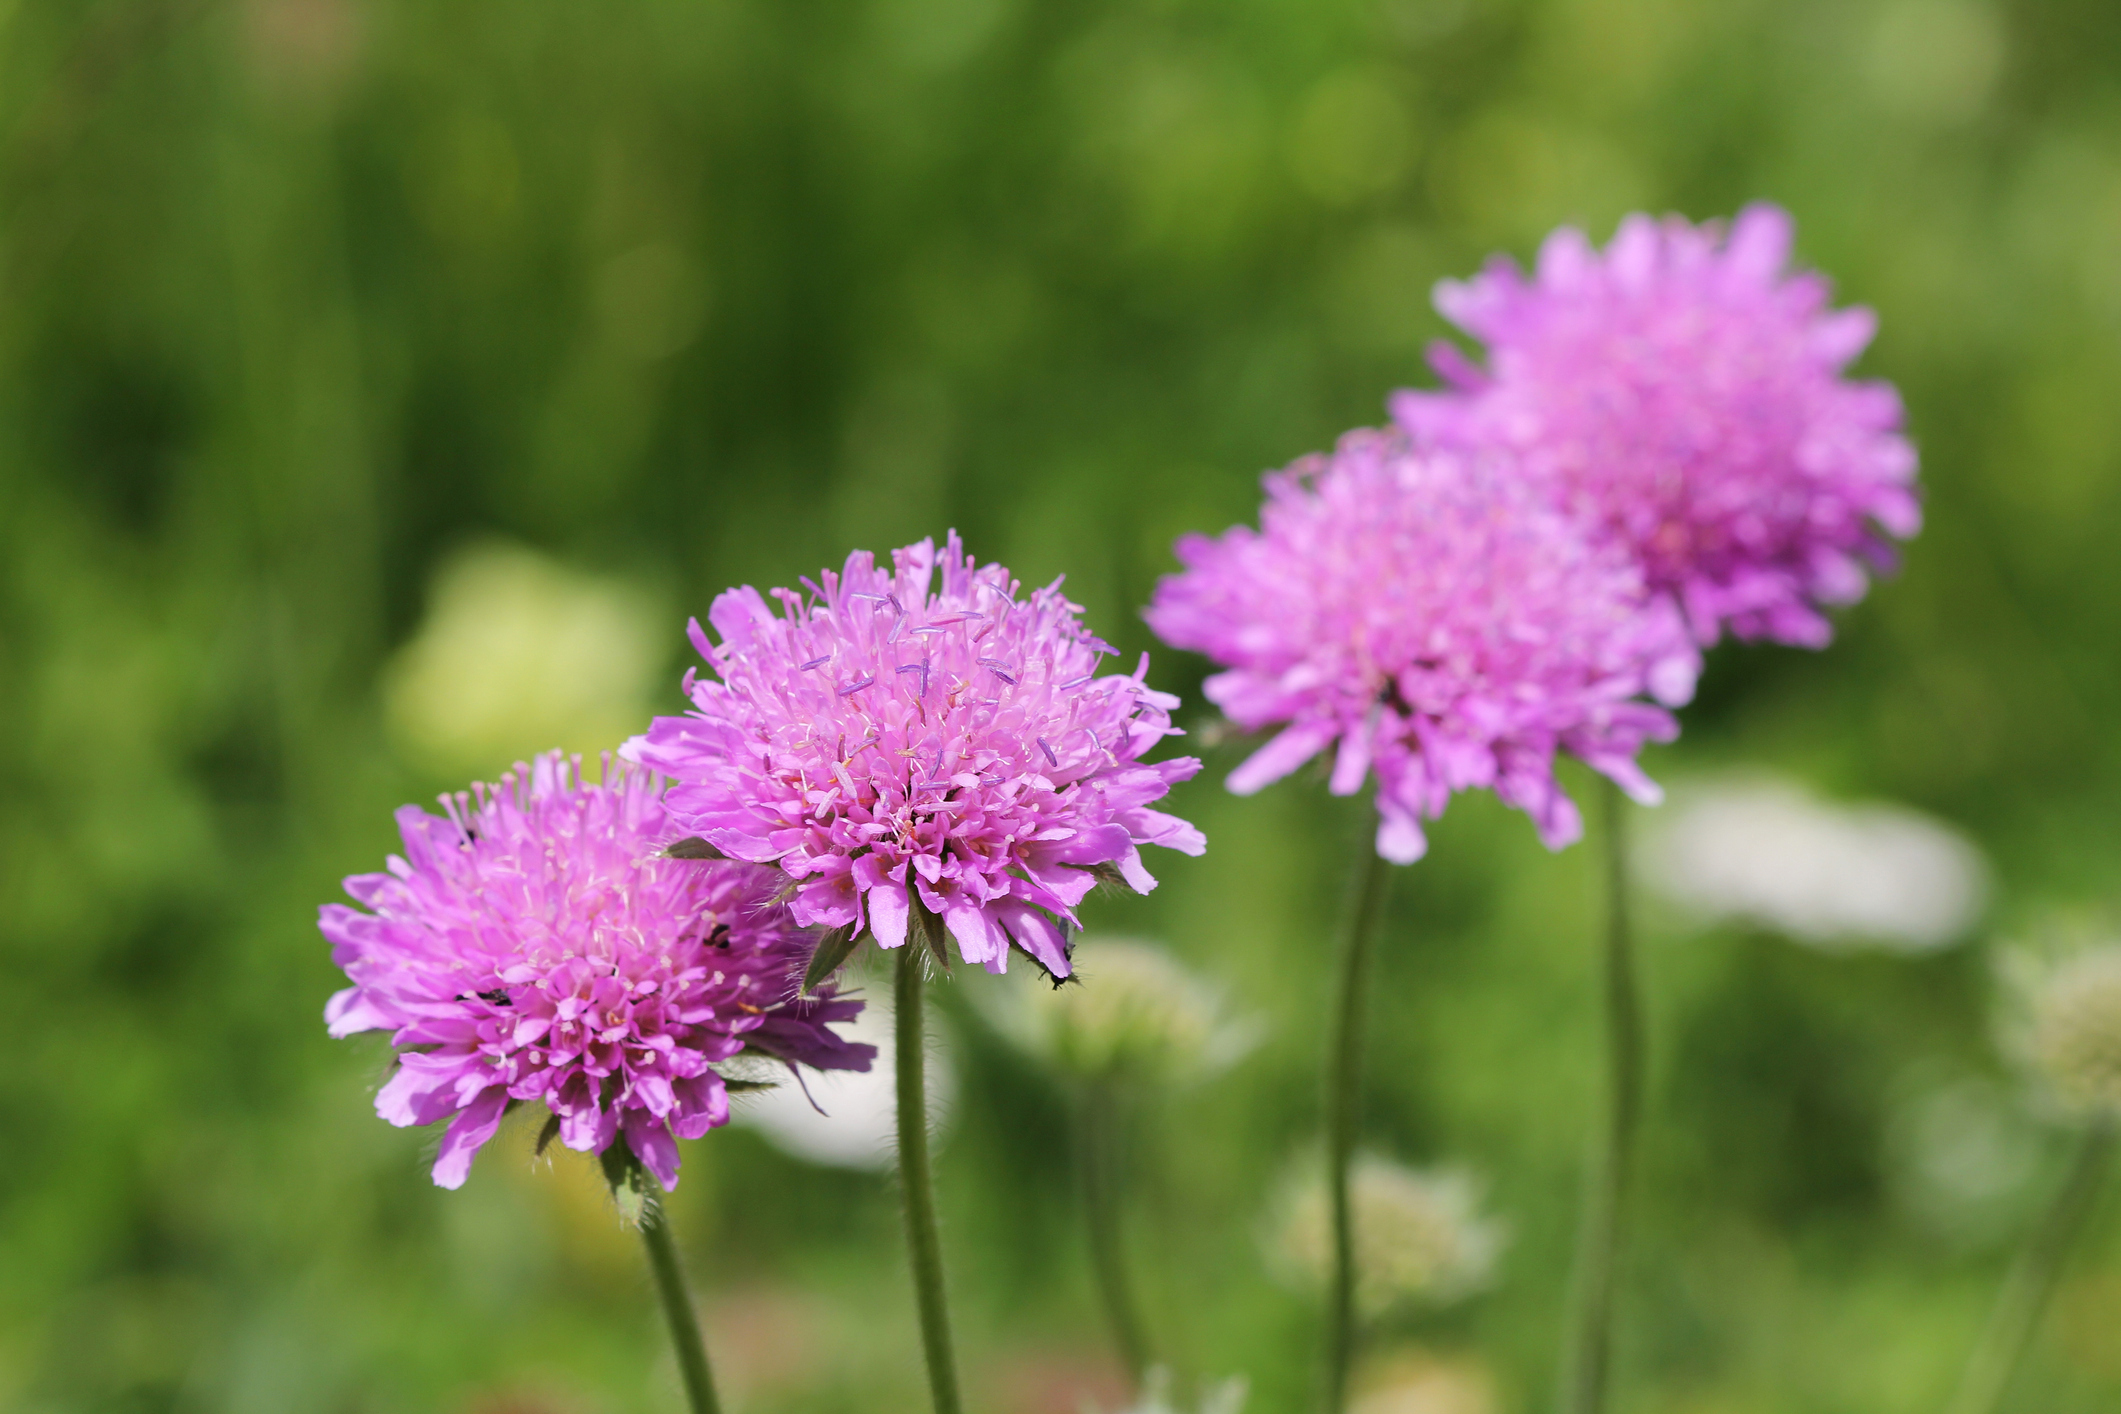 pink scabiosa flowers in grass